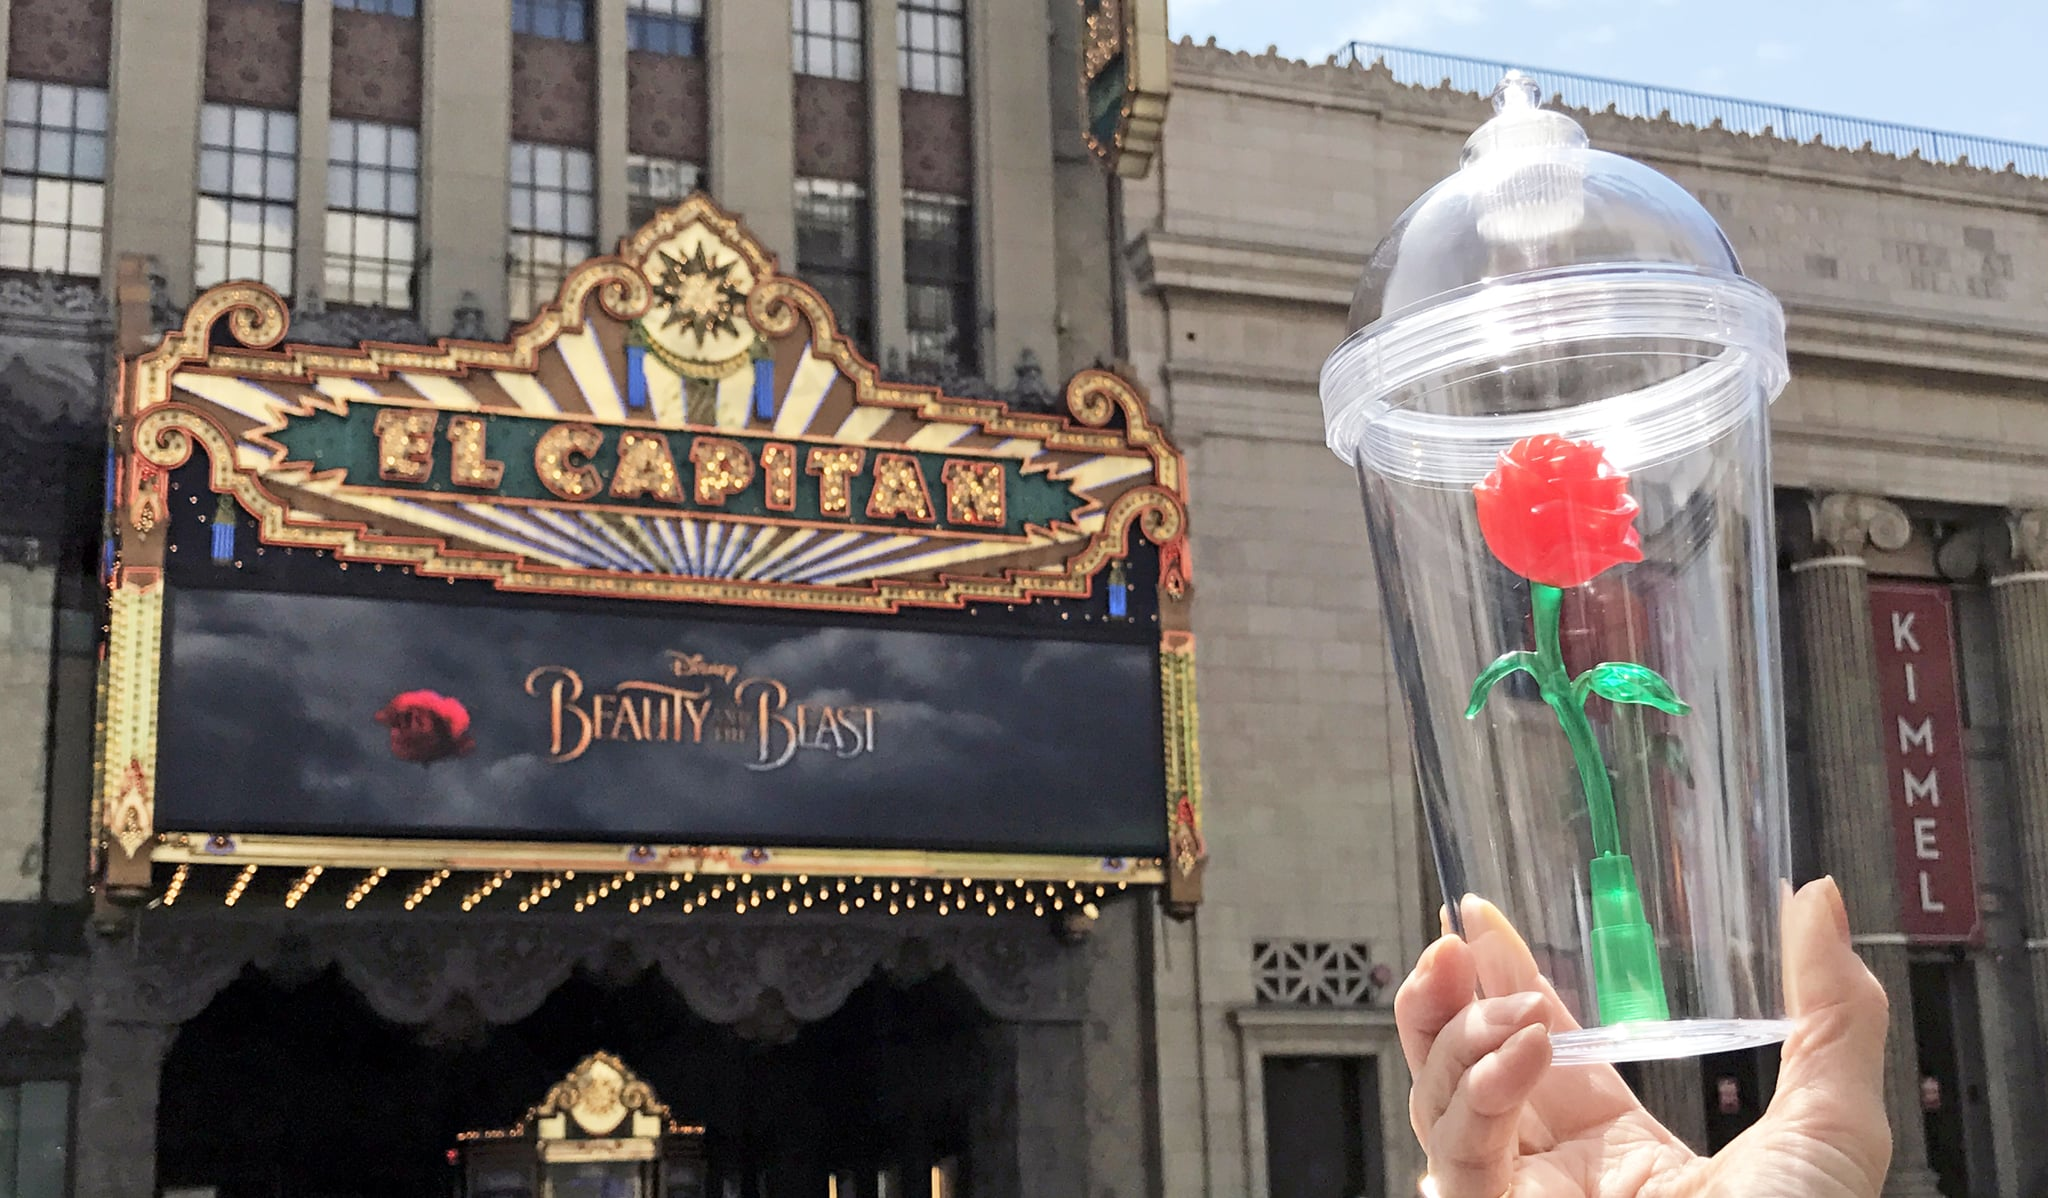 Beauty The Beast Rose Cup Available At El Capitan